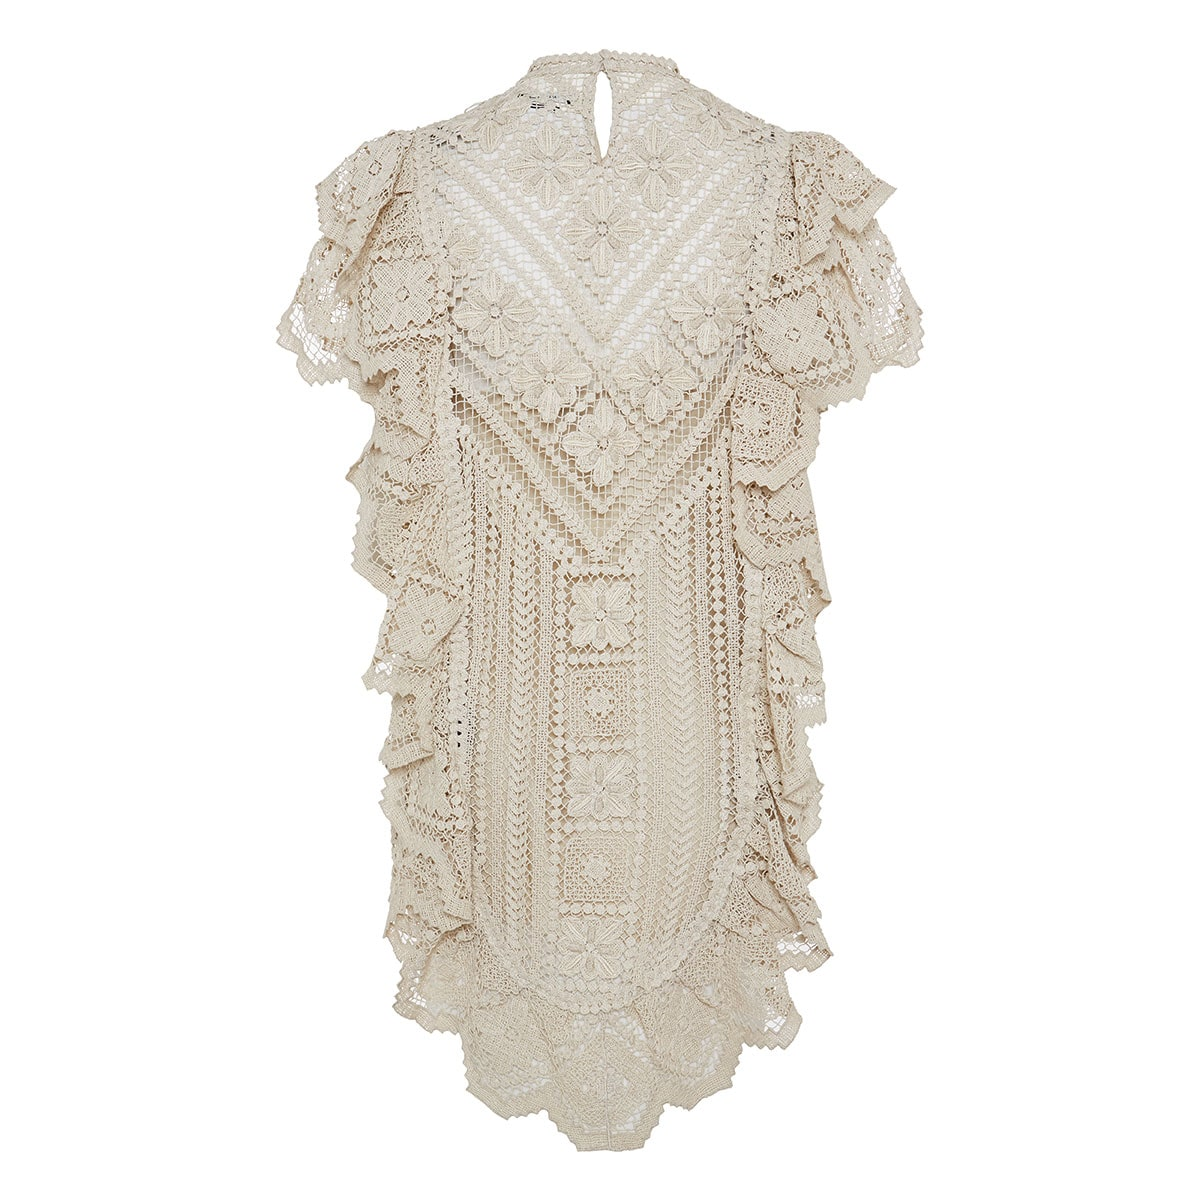 Zanetti ruffled crochet-knitted mini dress